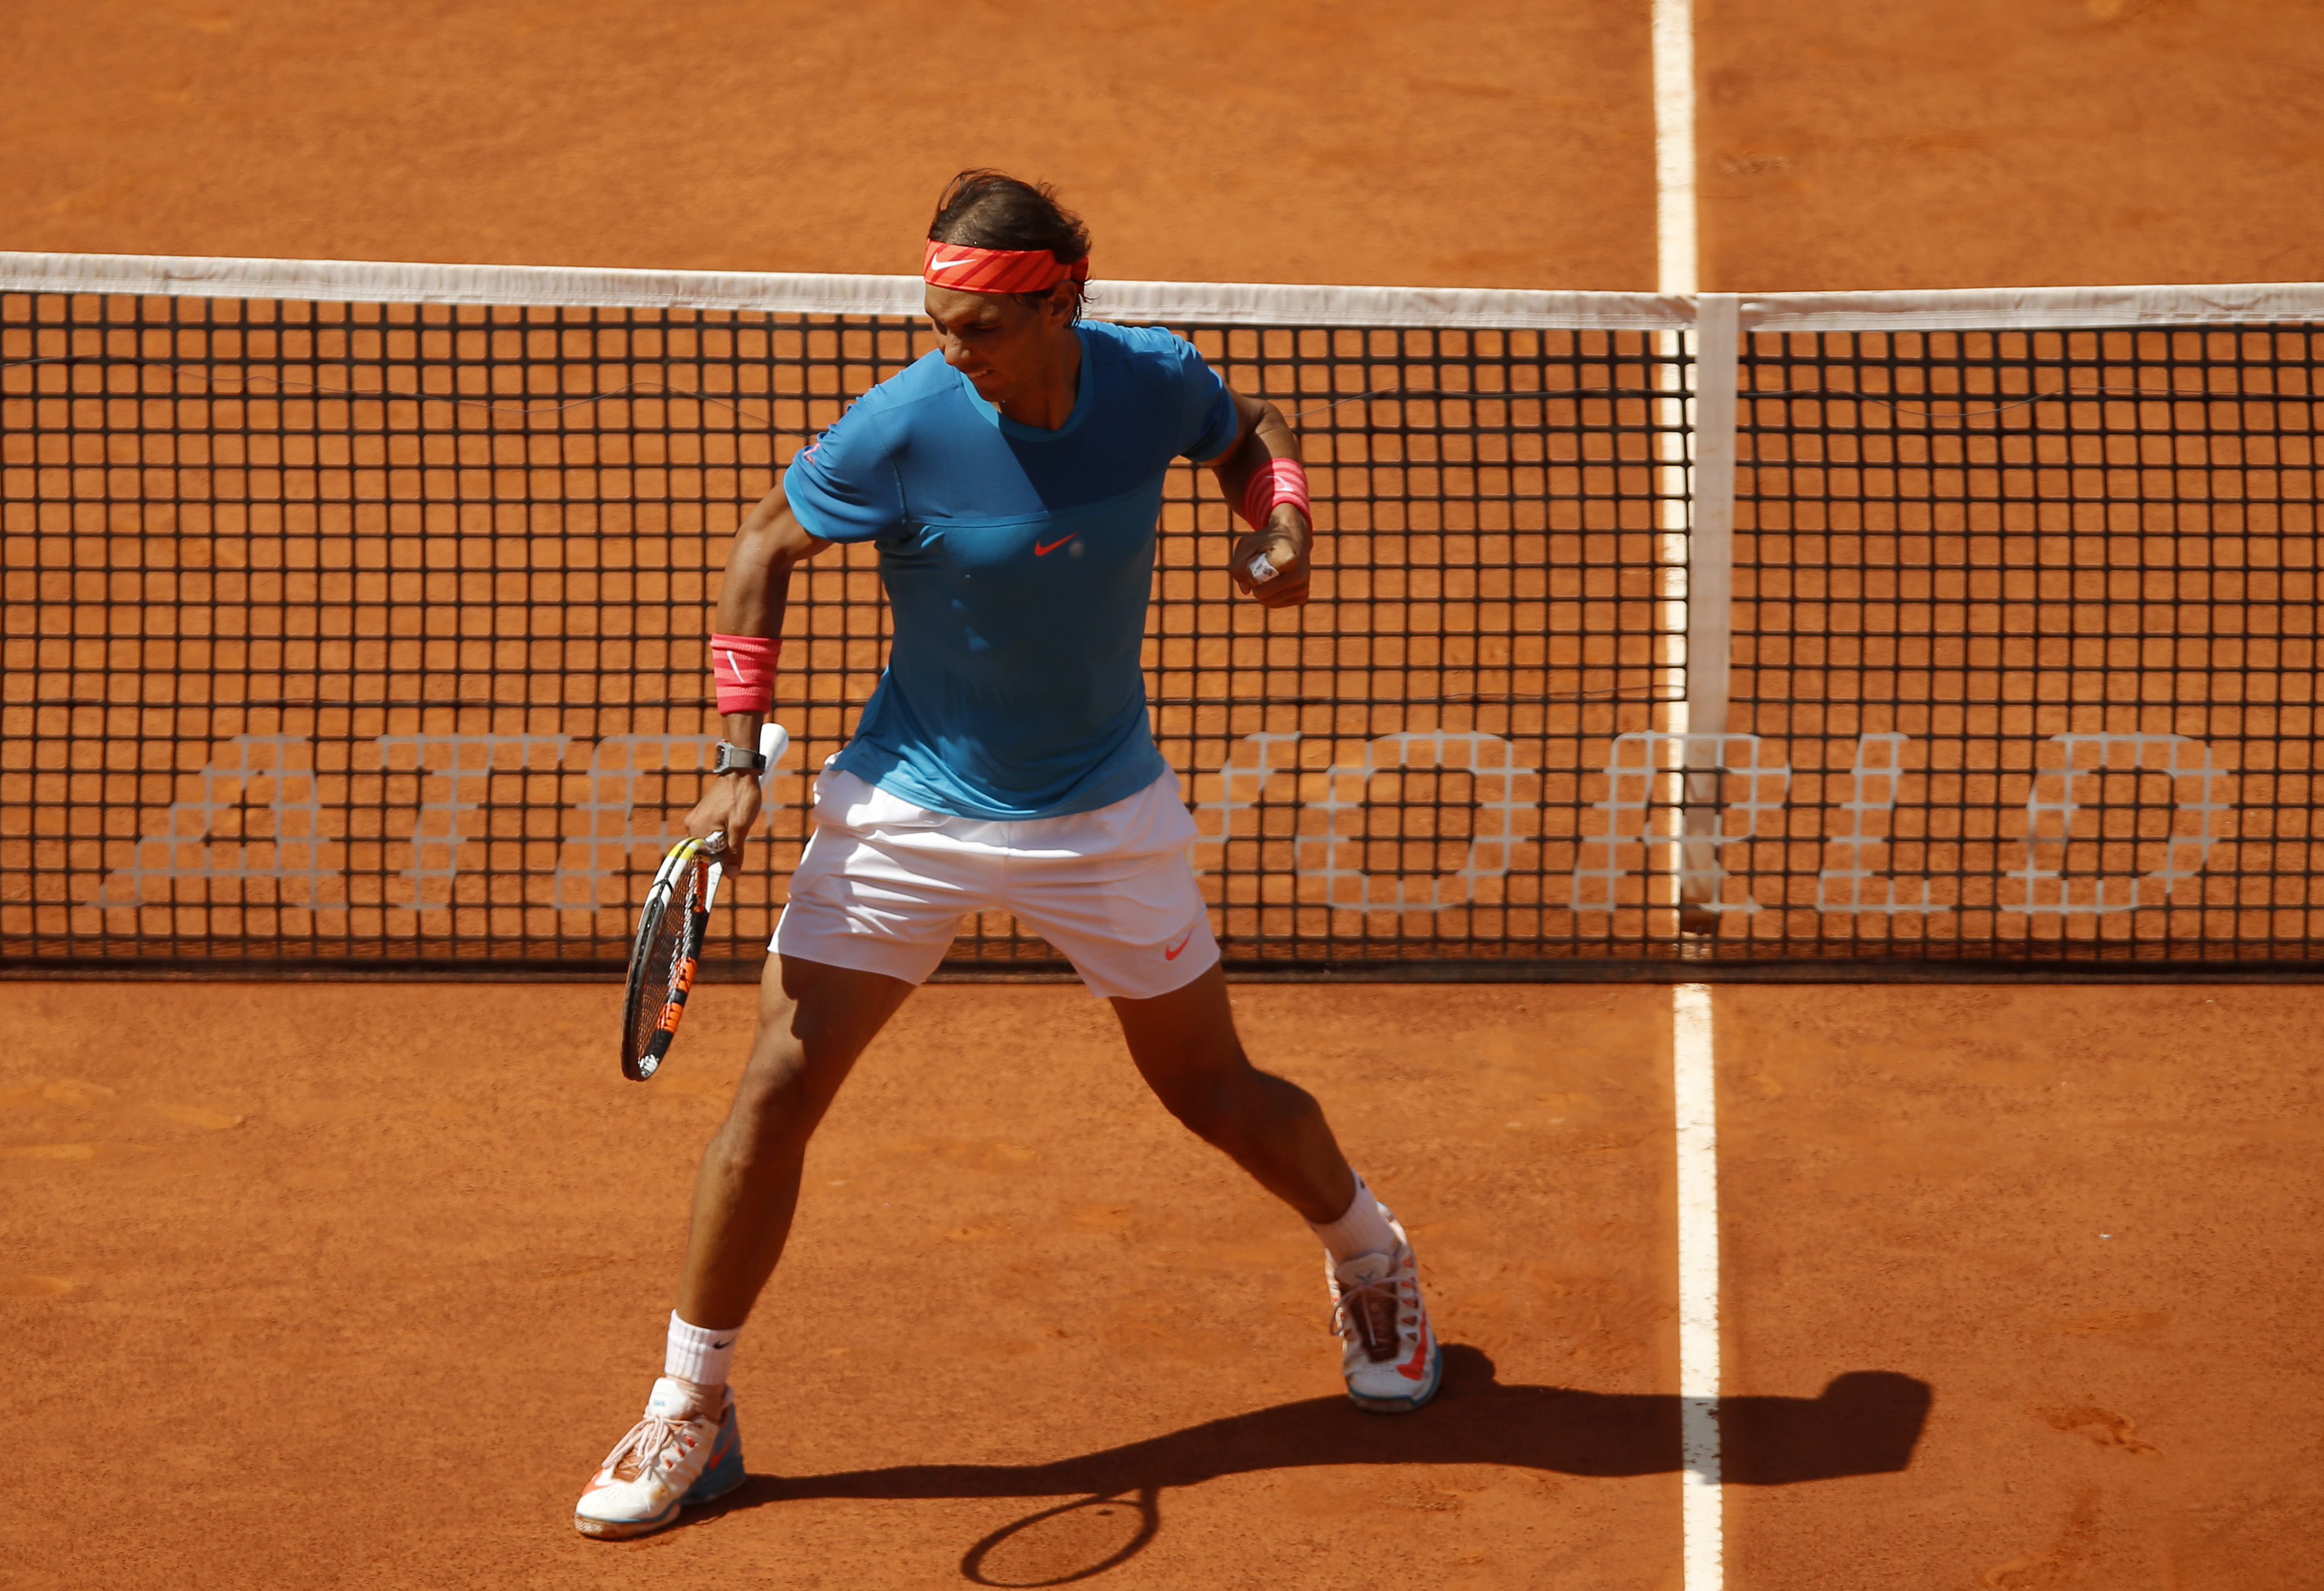 Rafael Nadal of Spain celebrates a point against Tomas Berdych of the Czech Republic  during the semifinal of the Madrid Open Tennis tournament in Madrid, Spain, Saturday, May 9, 2015. (AP Photo/Daniel Ochoa de Olza)